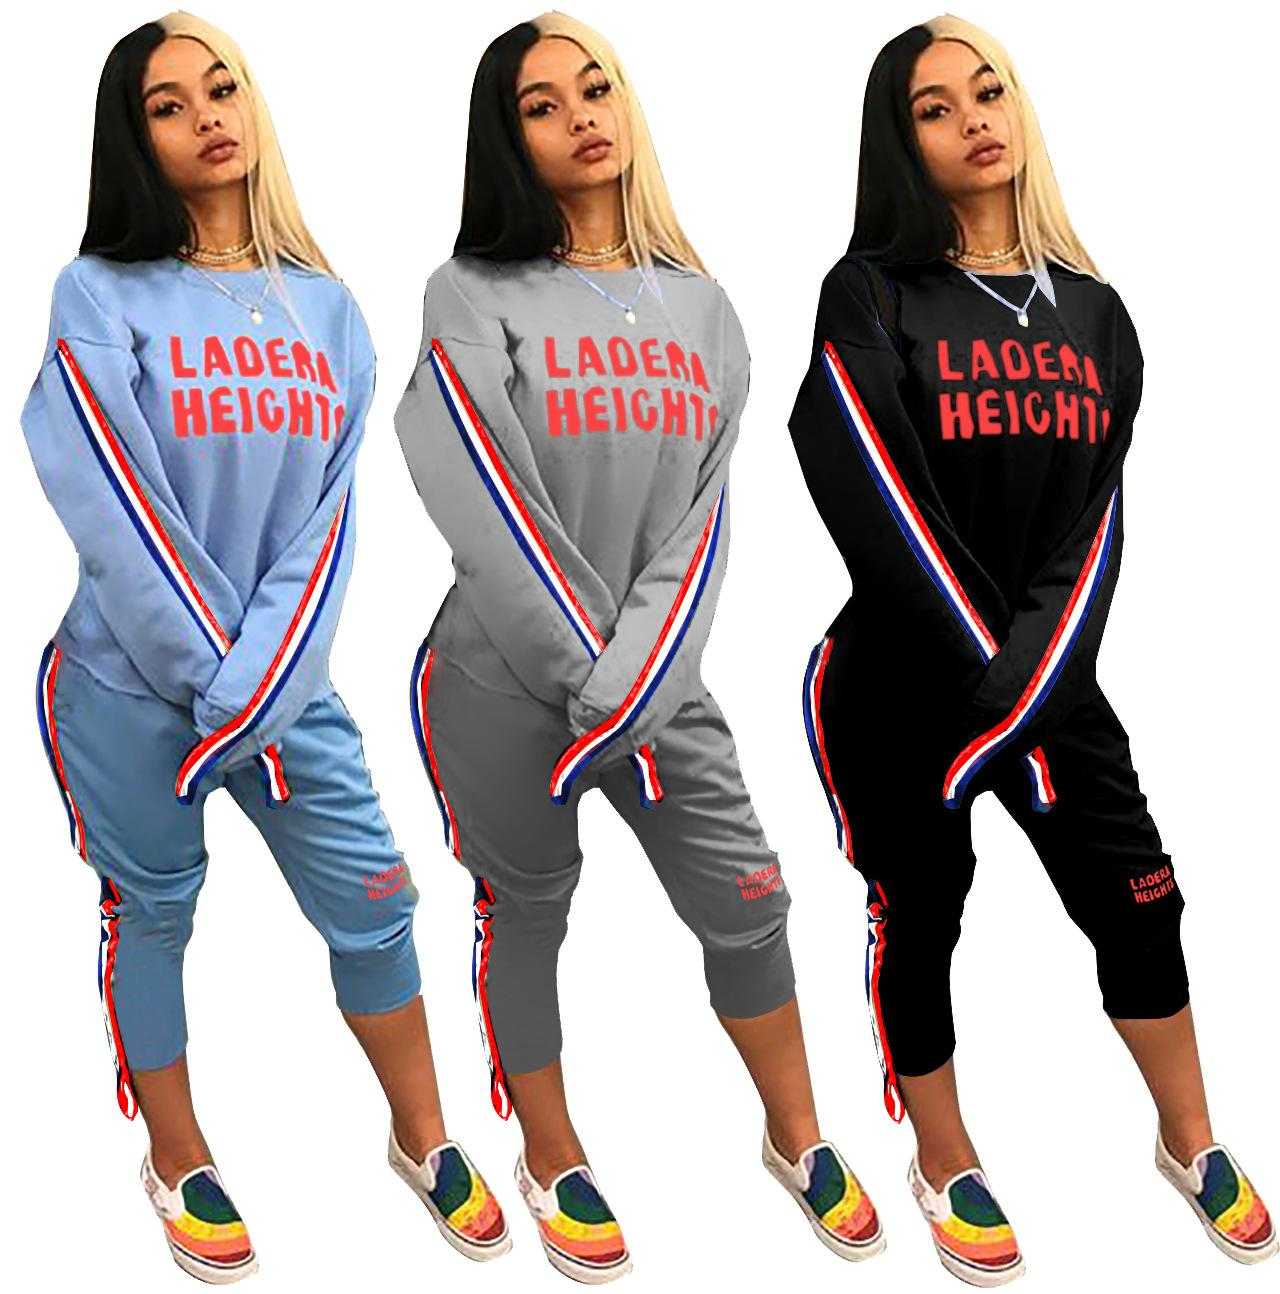 2019 Women Letter Print Tracksuits Top + Pants Woman Set Outfit Womens  Tracksuits Sweatsuits Sweat Suits Clothes Clothing From Hengda999 cc1ebec754f2